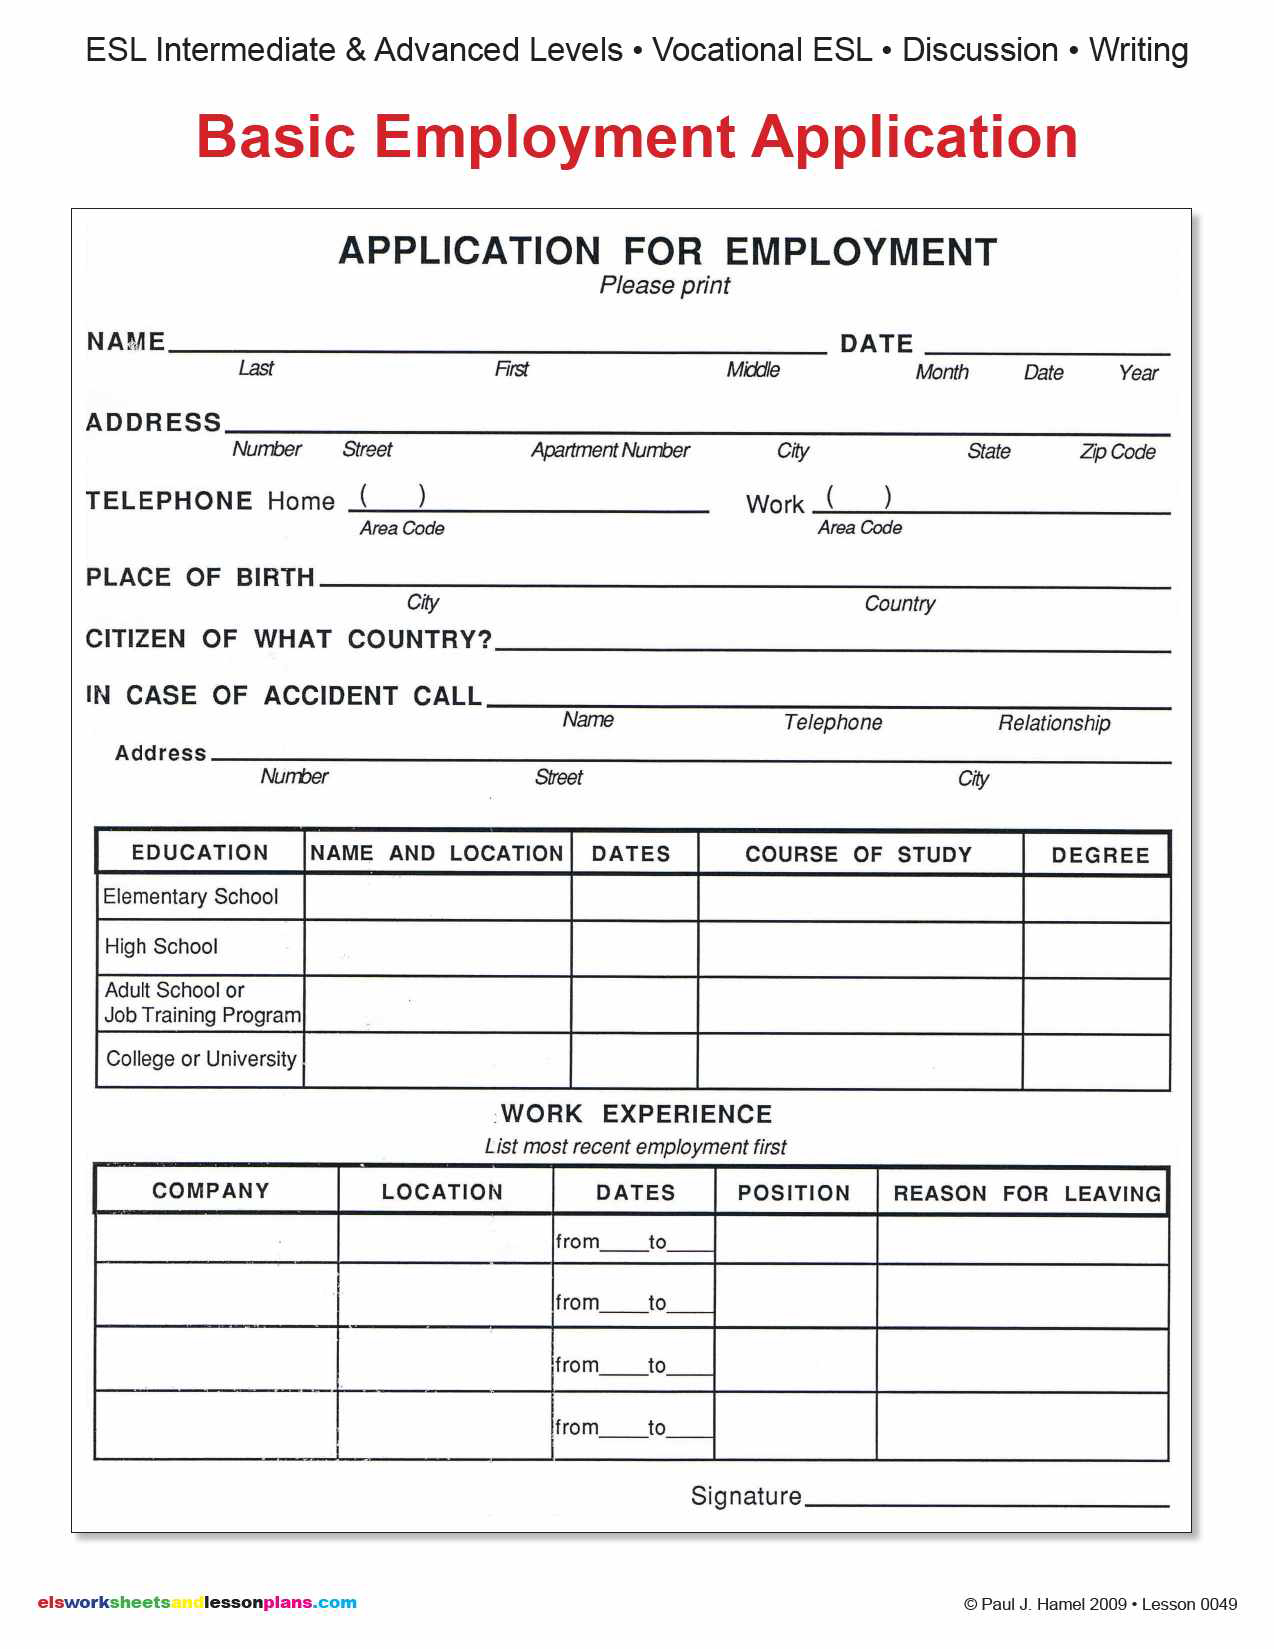 application employment employment application pictures to pin on esl basic employment application esl basic employment application